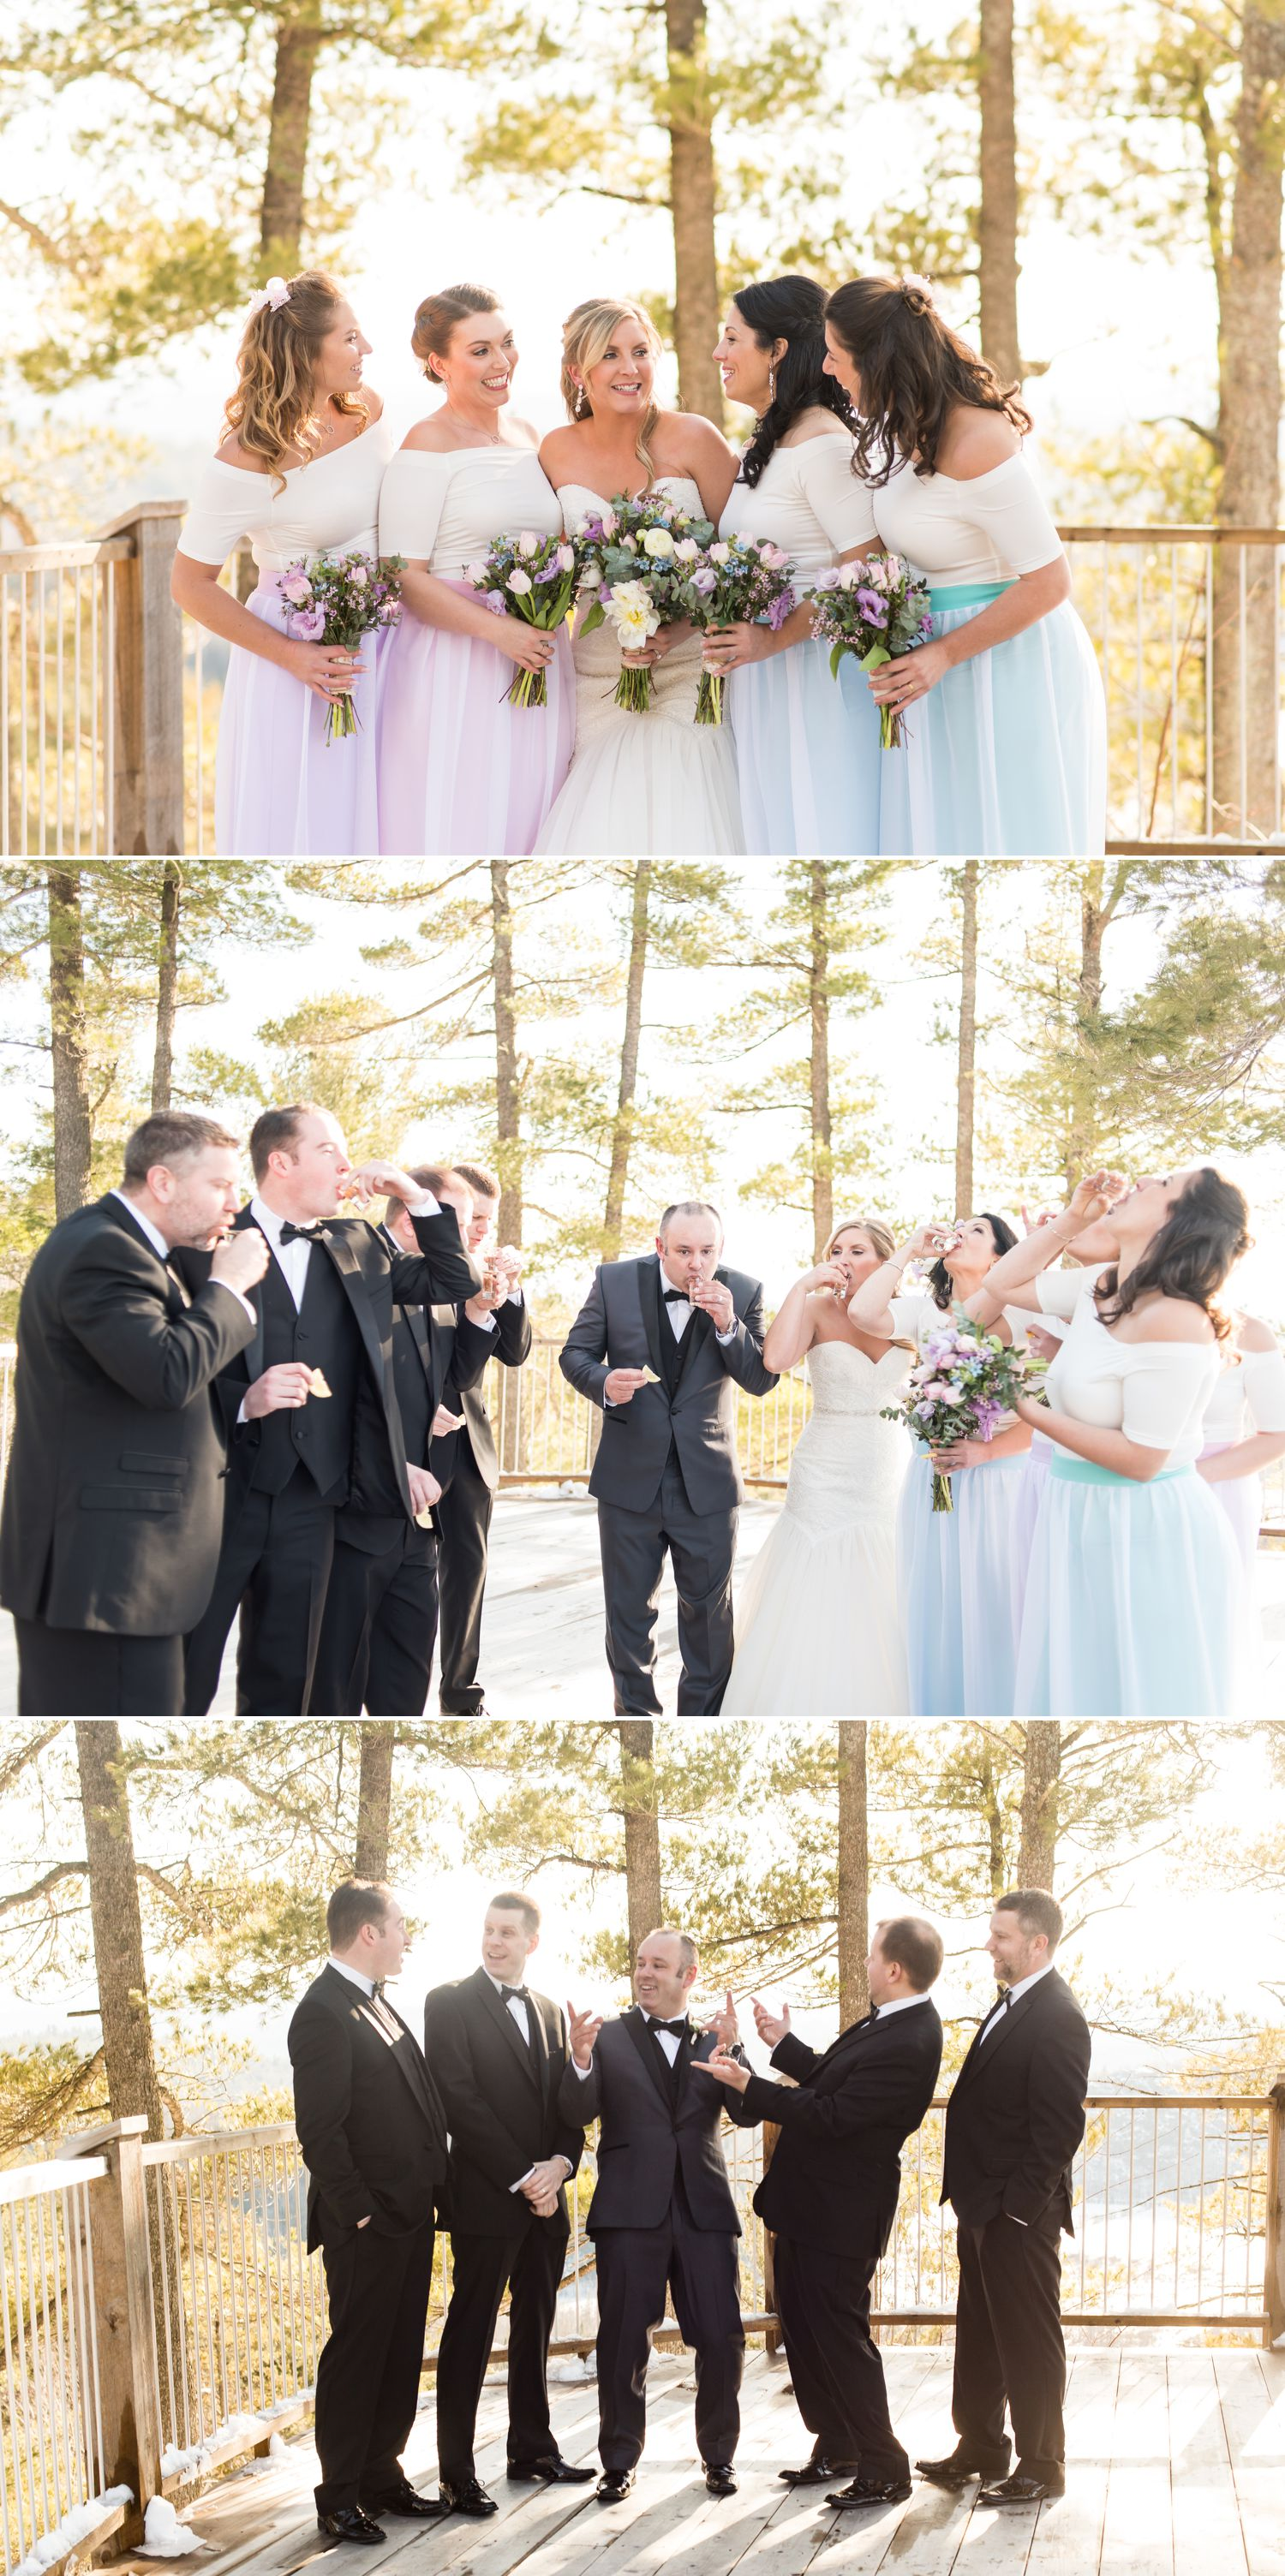 Group photos of the Bridesmaids and Groomsmen and then the group taking a shot together